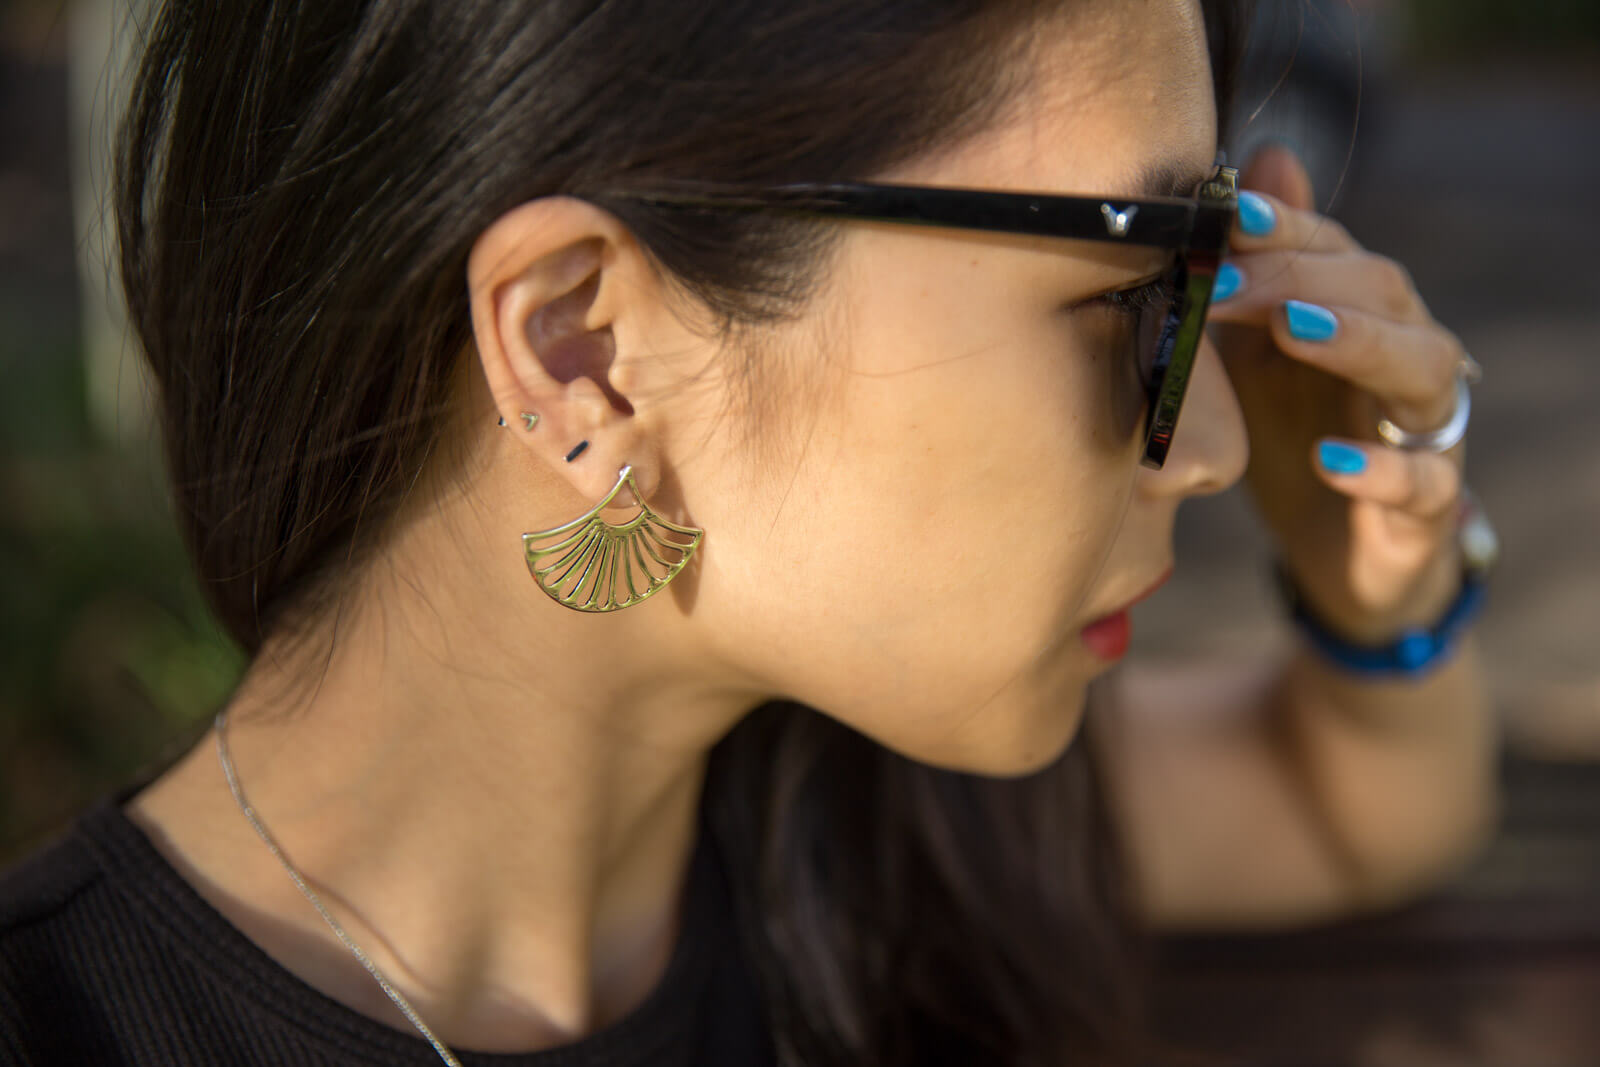 A close up of the side of a woman's face; she has two stud earrings in her ear and a larger palm/fan shaped earring on the bottom lobe. She has light blue painted nails and is pushing her glasses at the nose bridge.